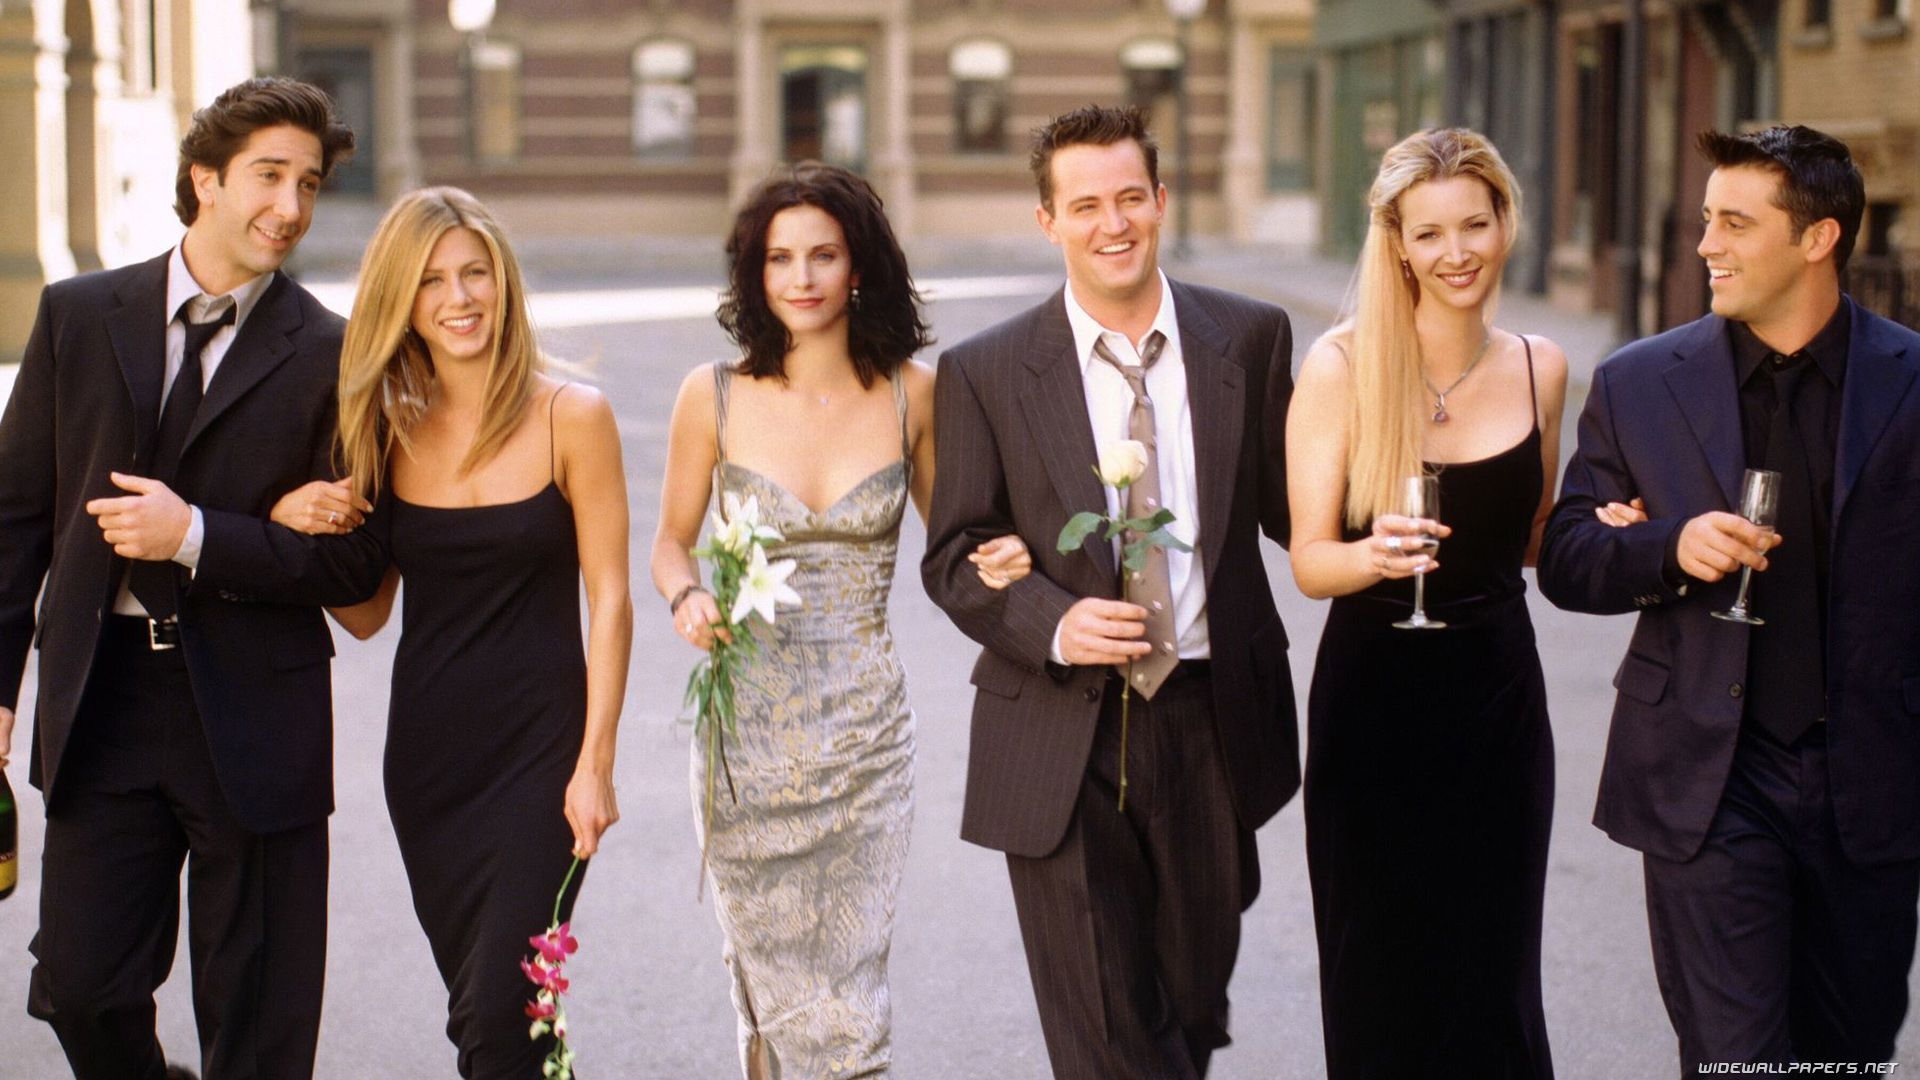 Friends Tv Show Wallpapers 800 600 Friends Pictures Wallpapers 40